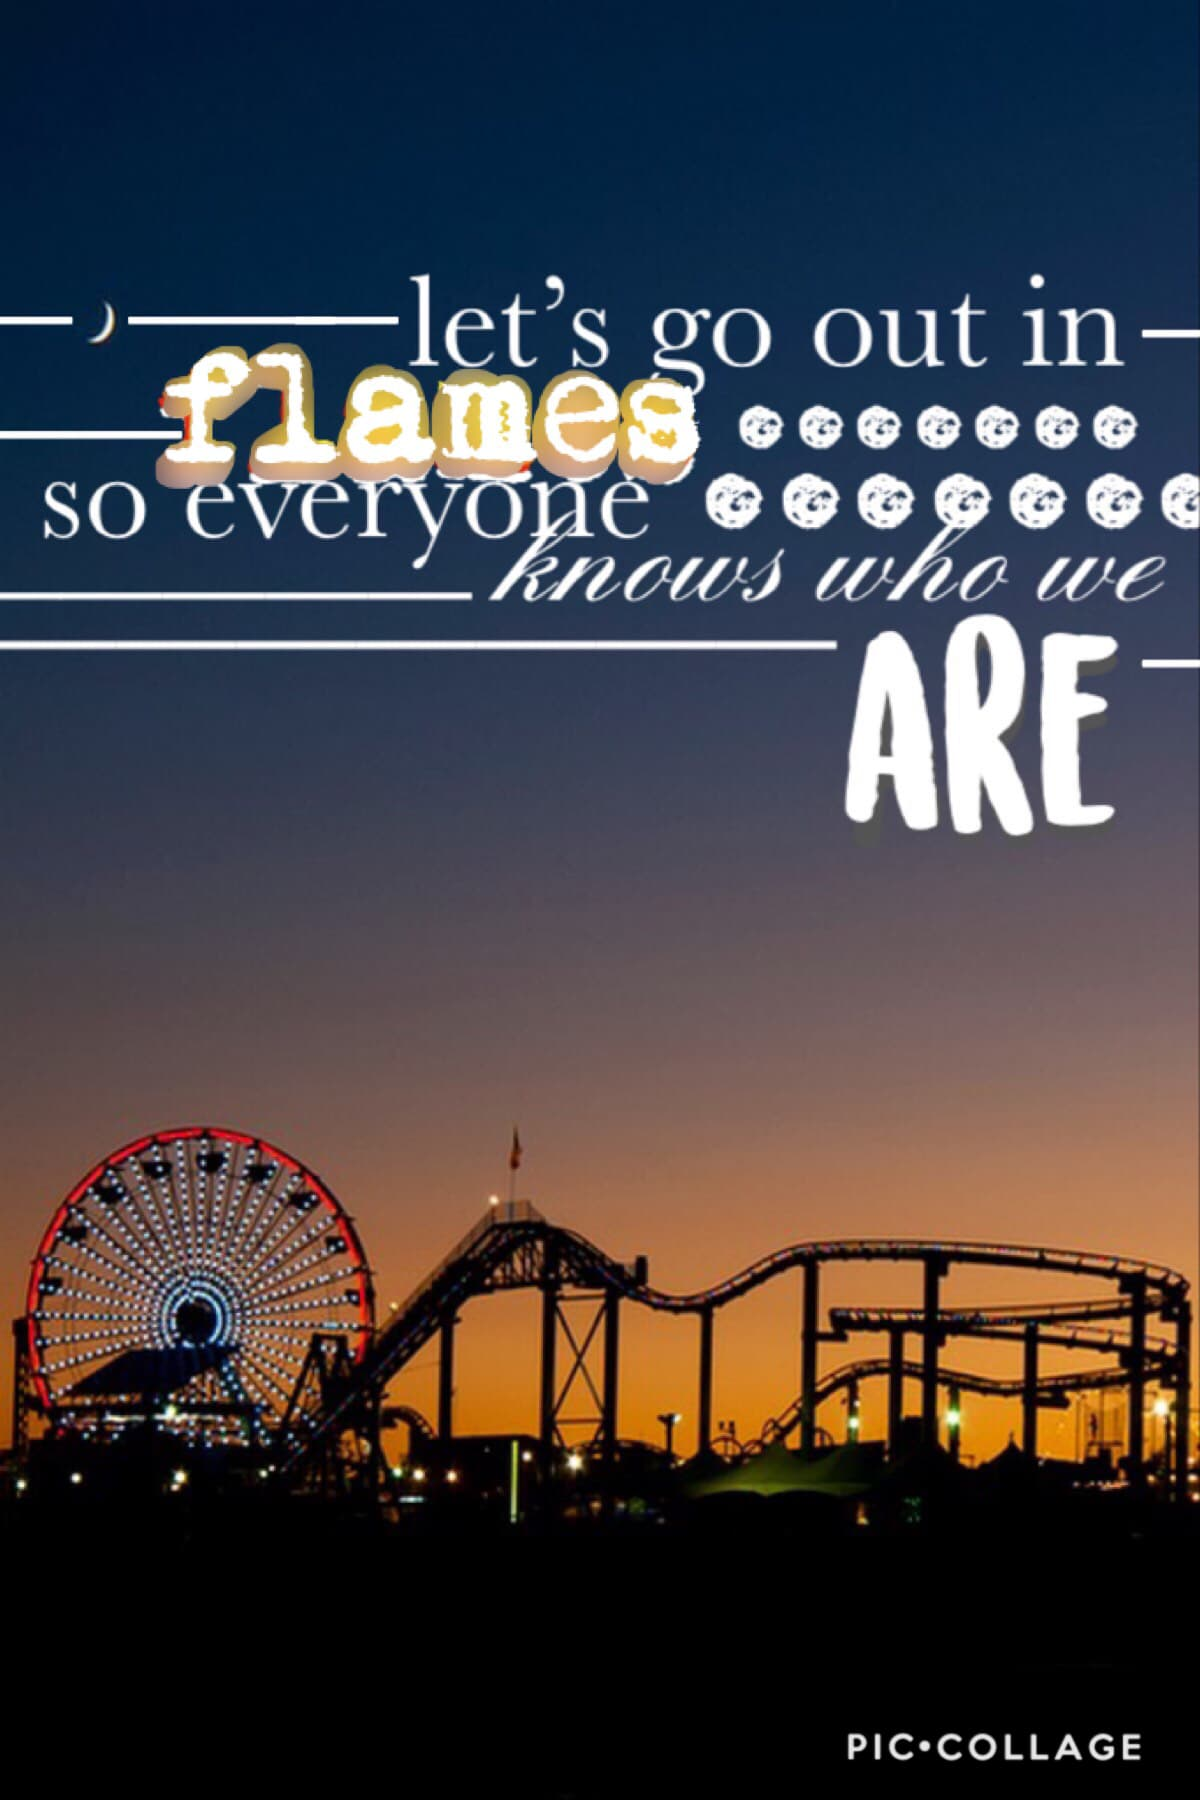 If anyone can get which song this quote is from they get a shotout!! xx